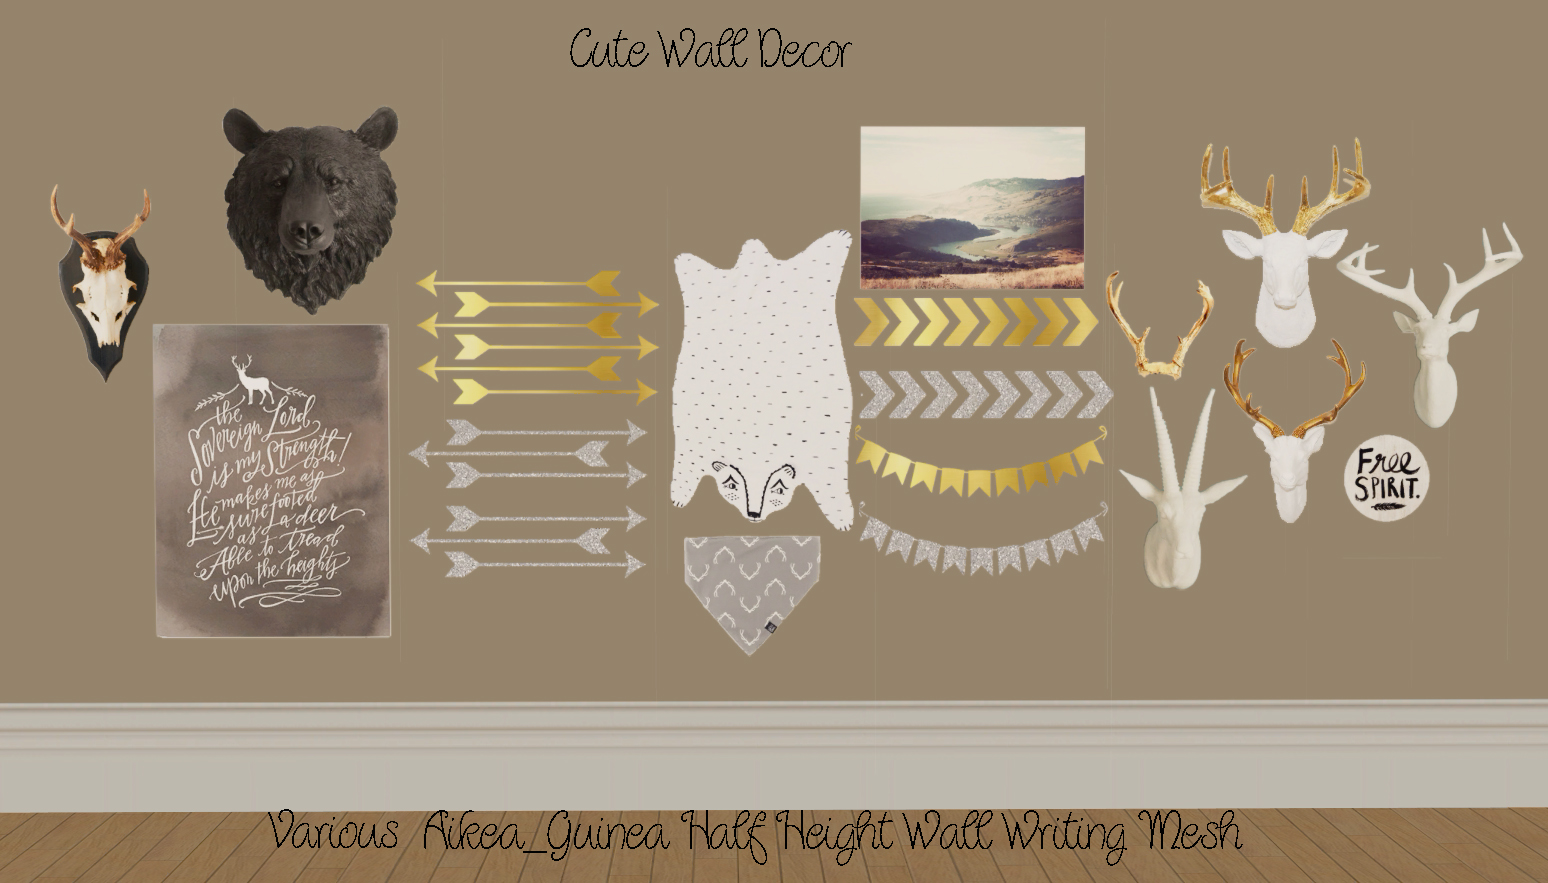 Wall Writing Decor Cute Wall Decor Casaslindas